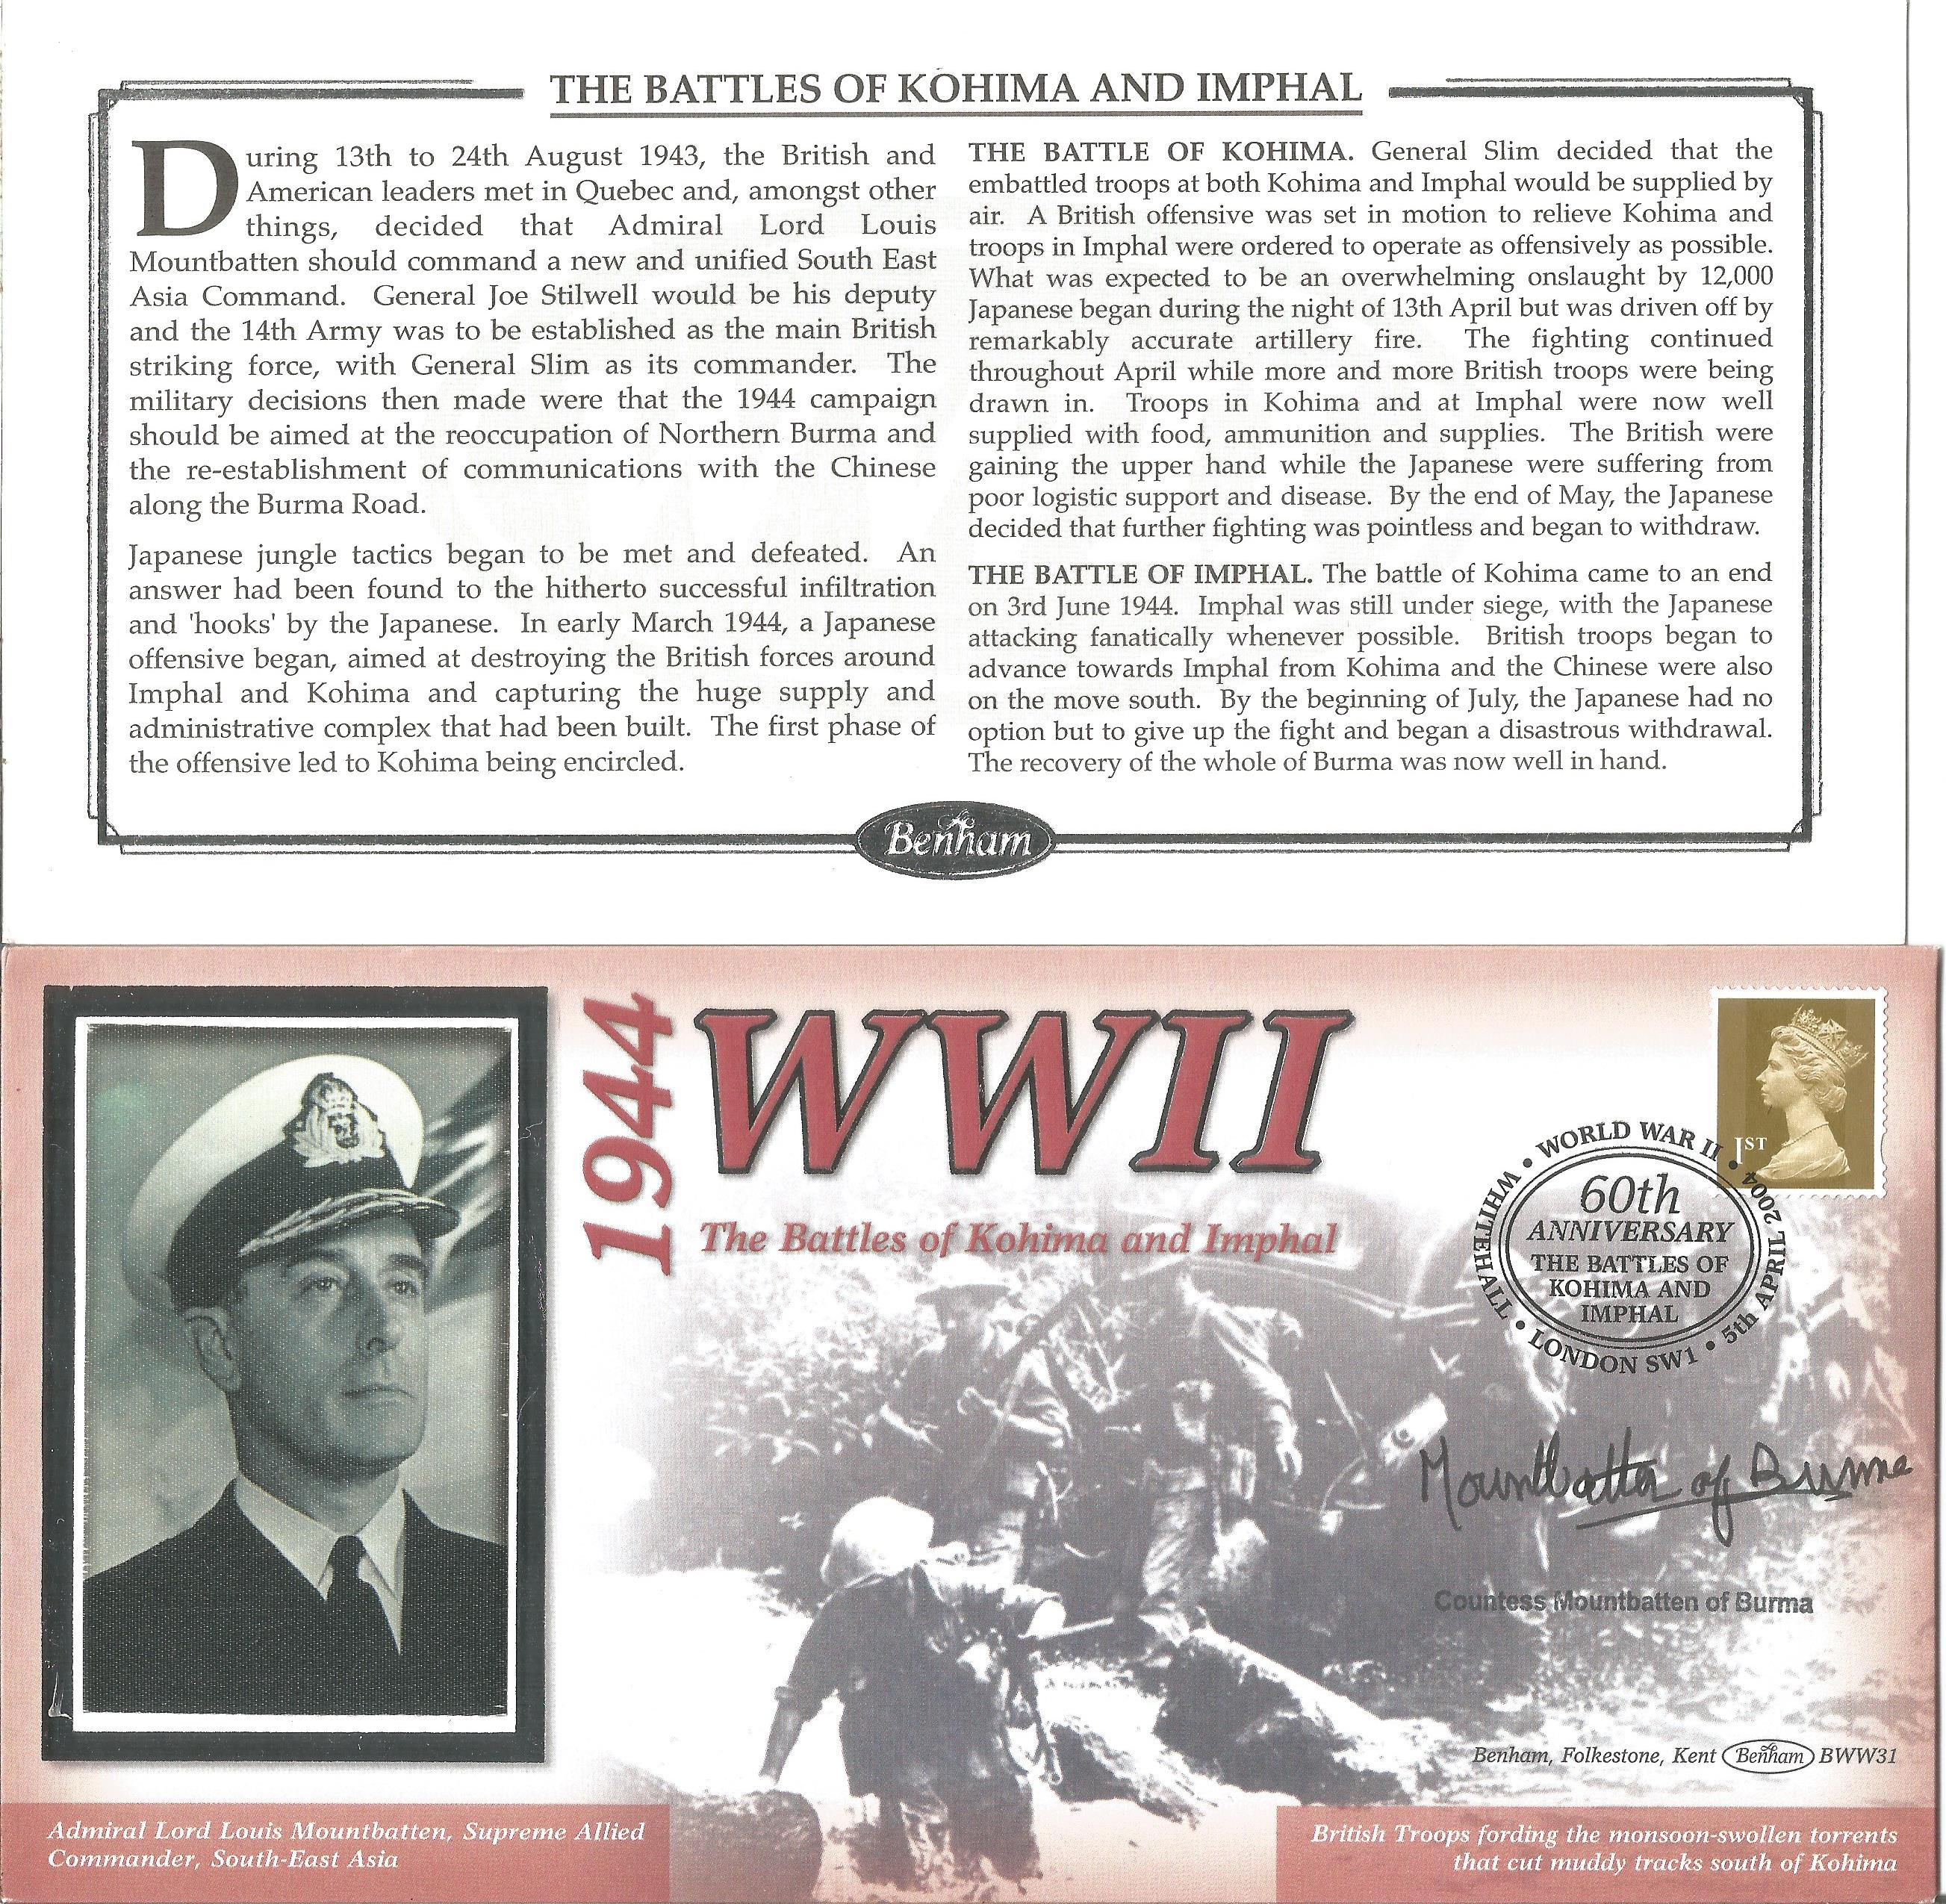 Countess Mountbatten of Burma signed 2004 Battles of Kohima and Imphal Benham comm. Cover. With